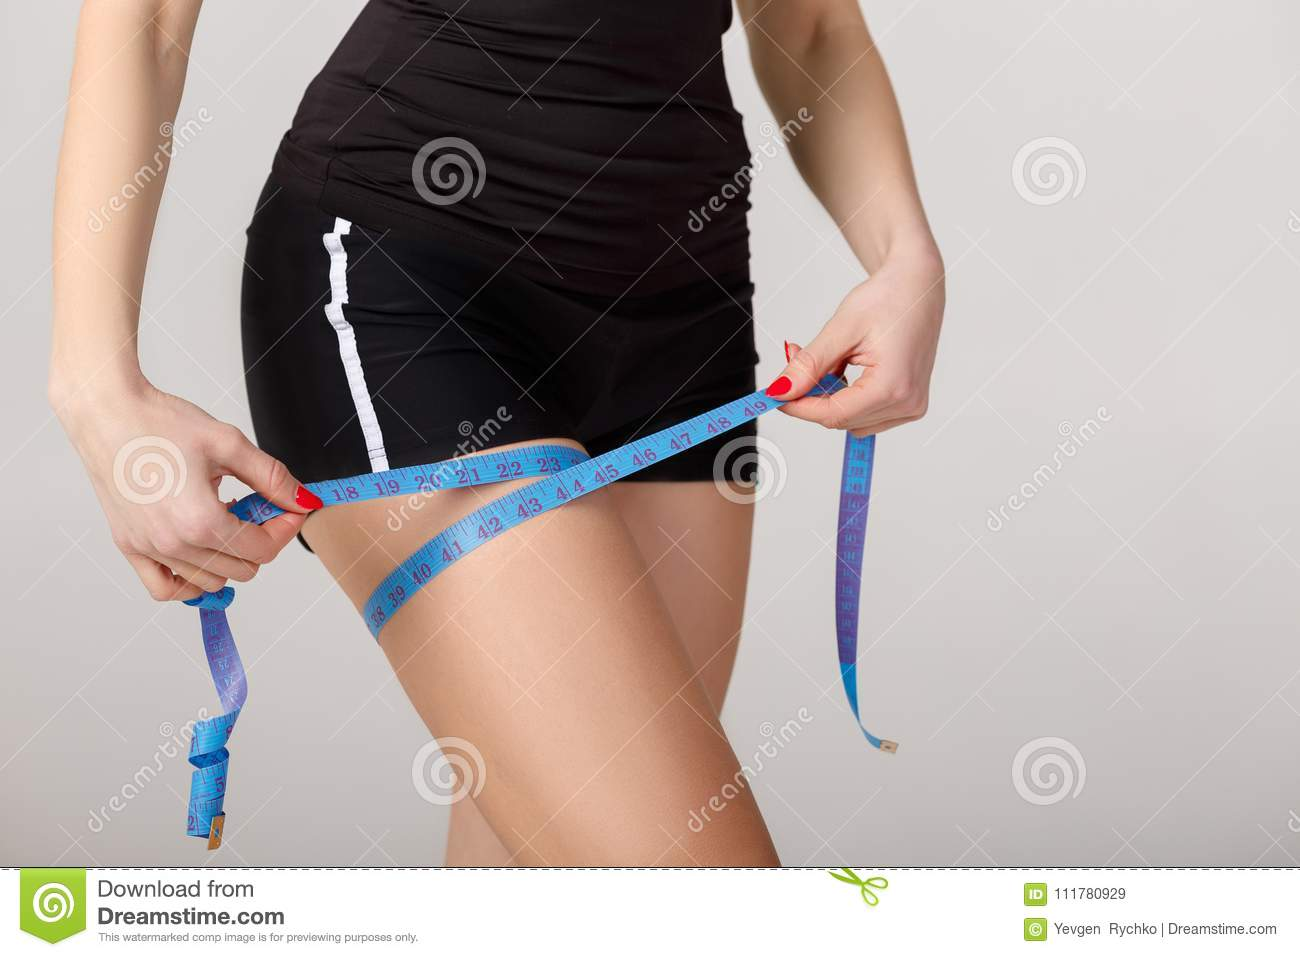 Woman measuring hip with measuring tape